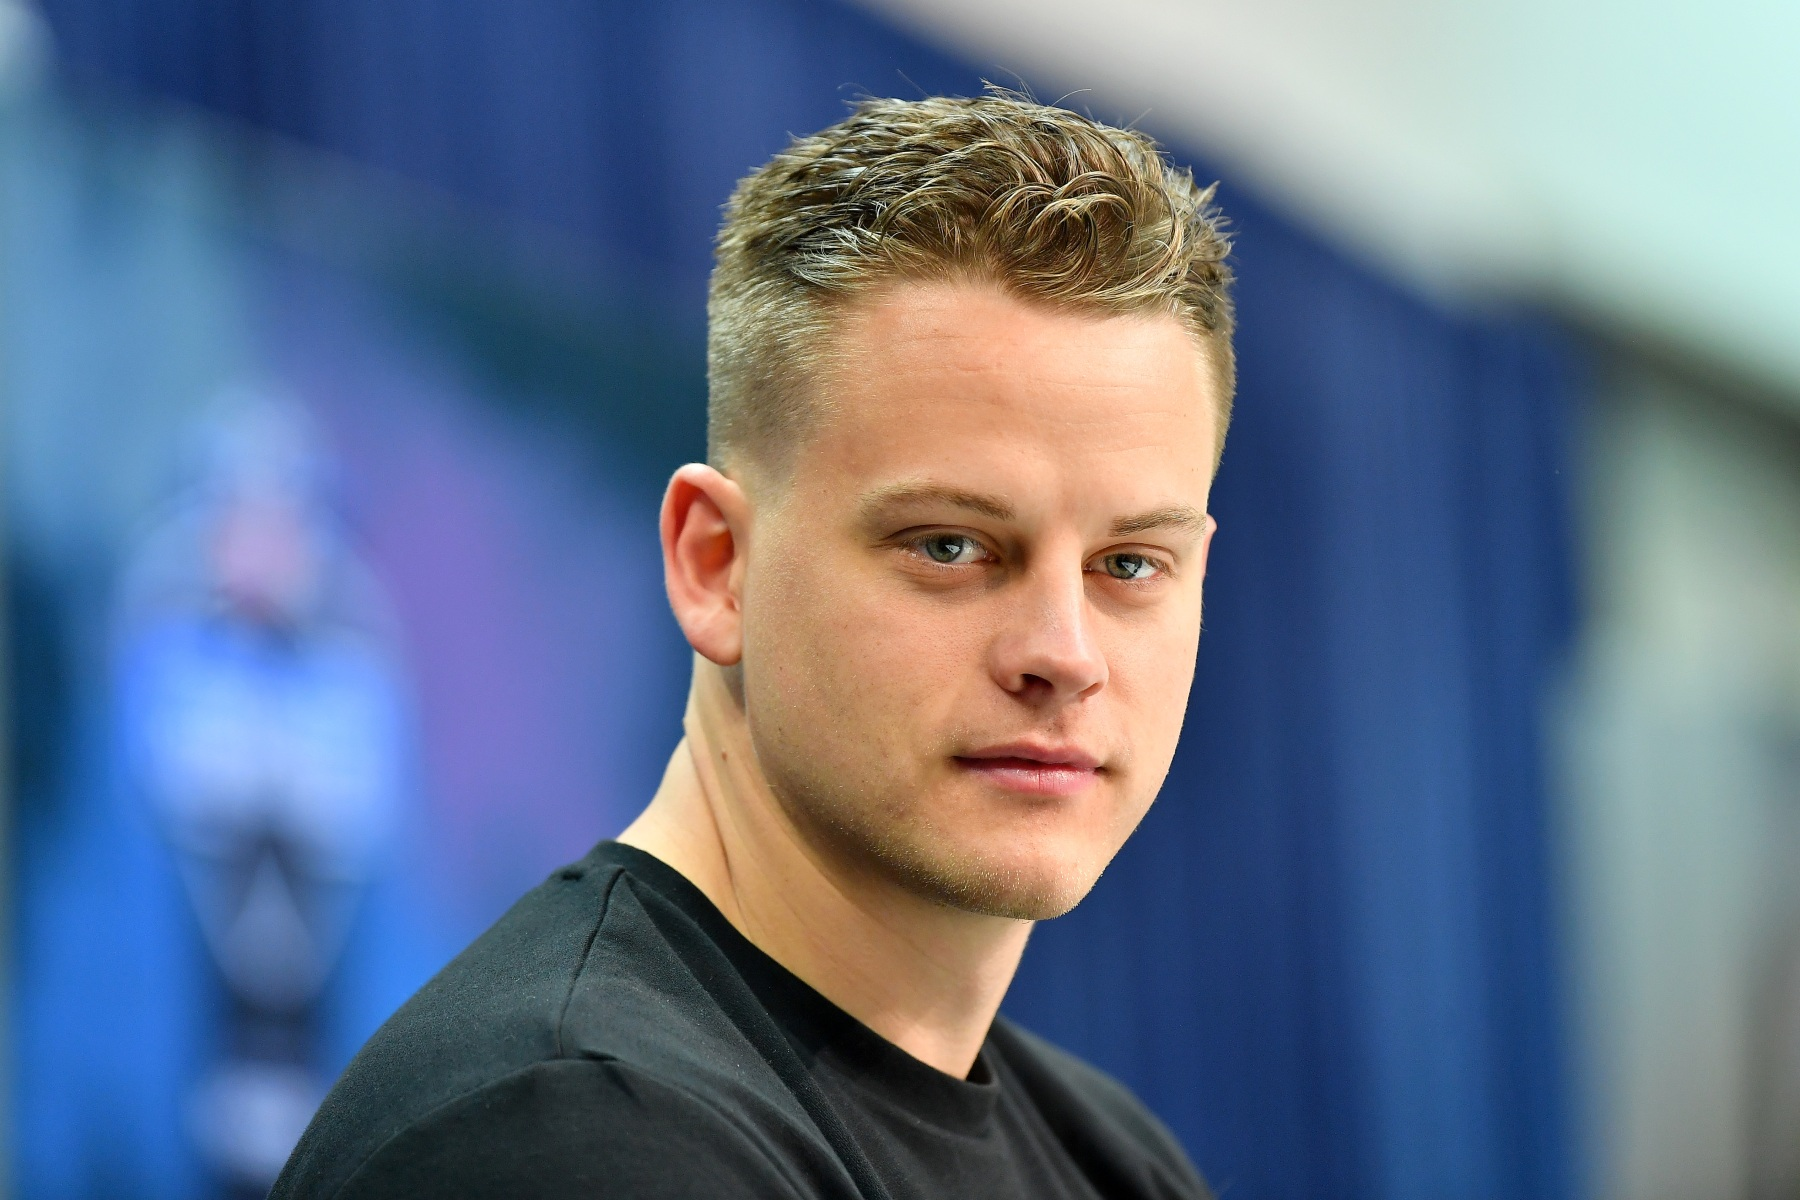 Joe Burrow during the first day of the NFL Scouting Combine. (Alika Jenner/Getty)